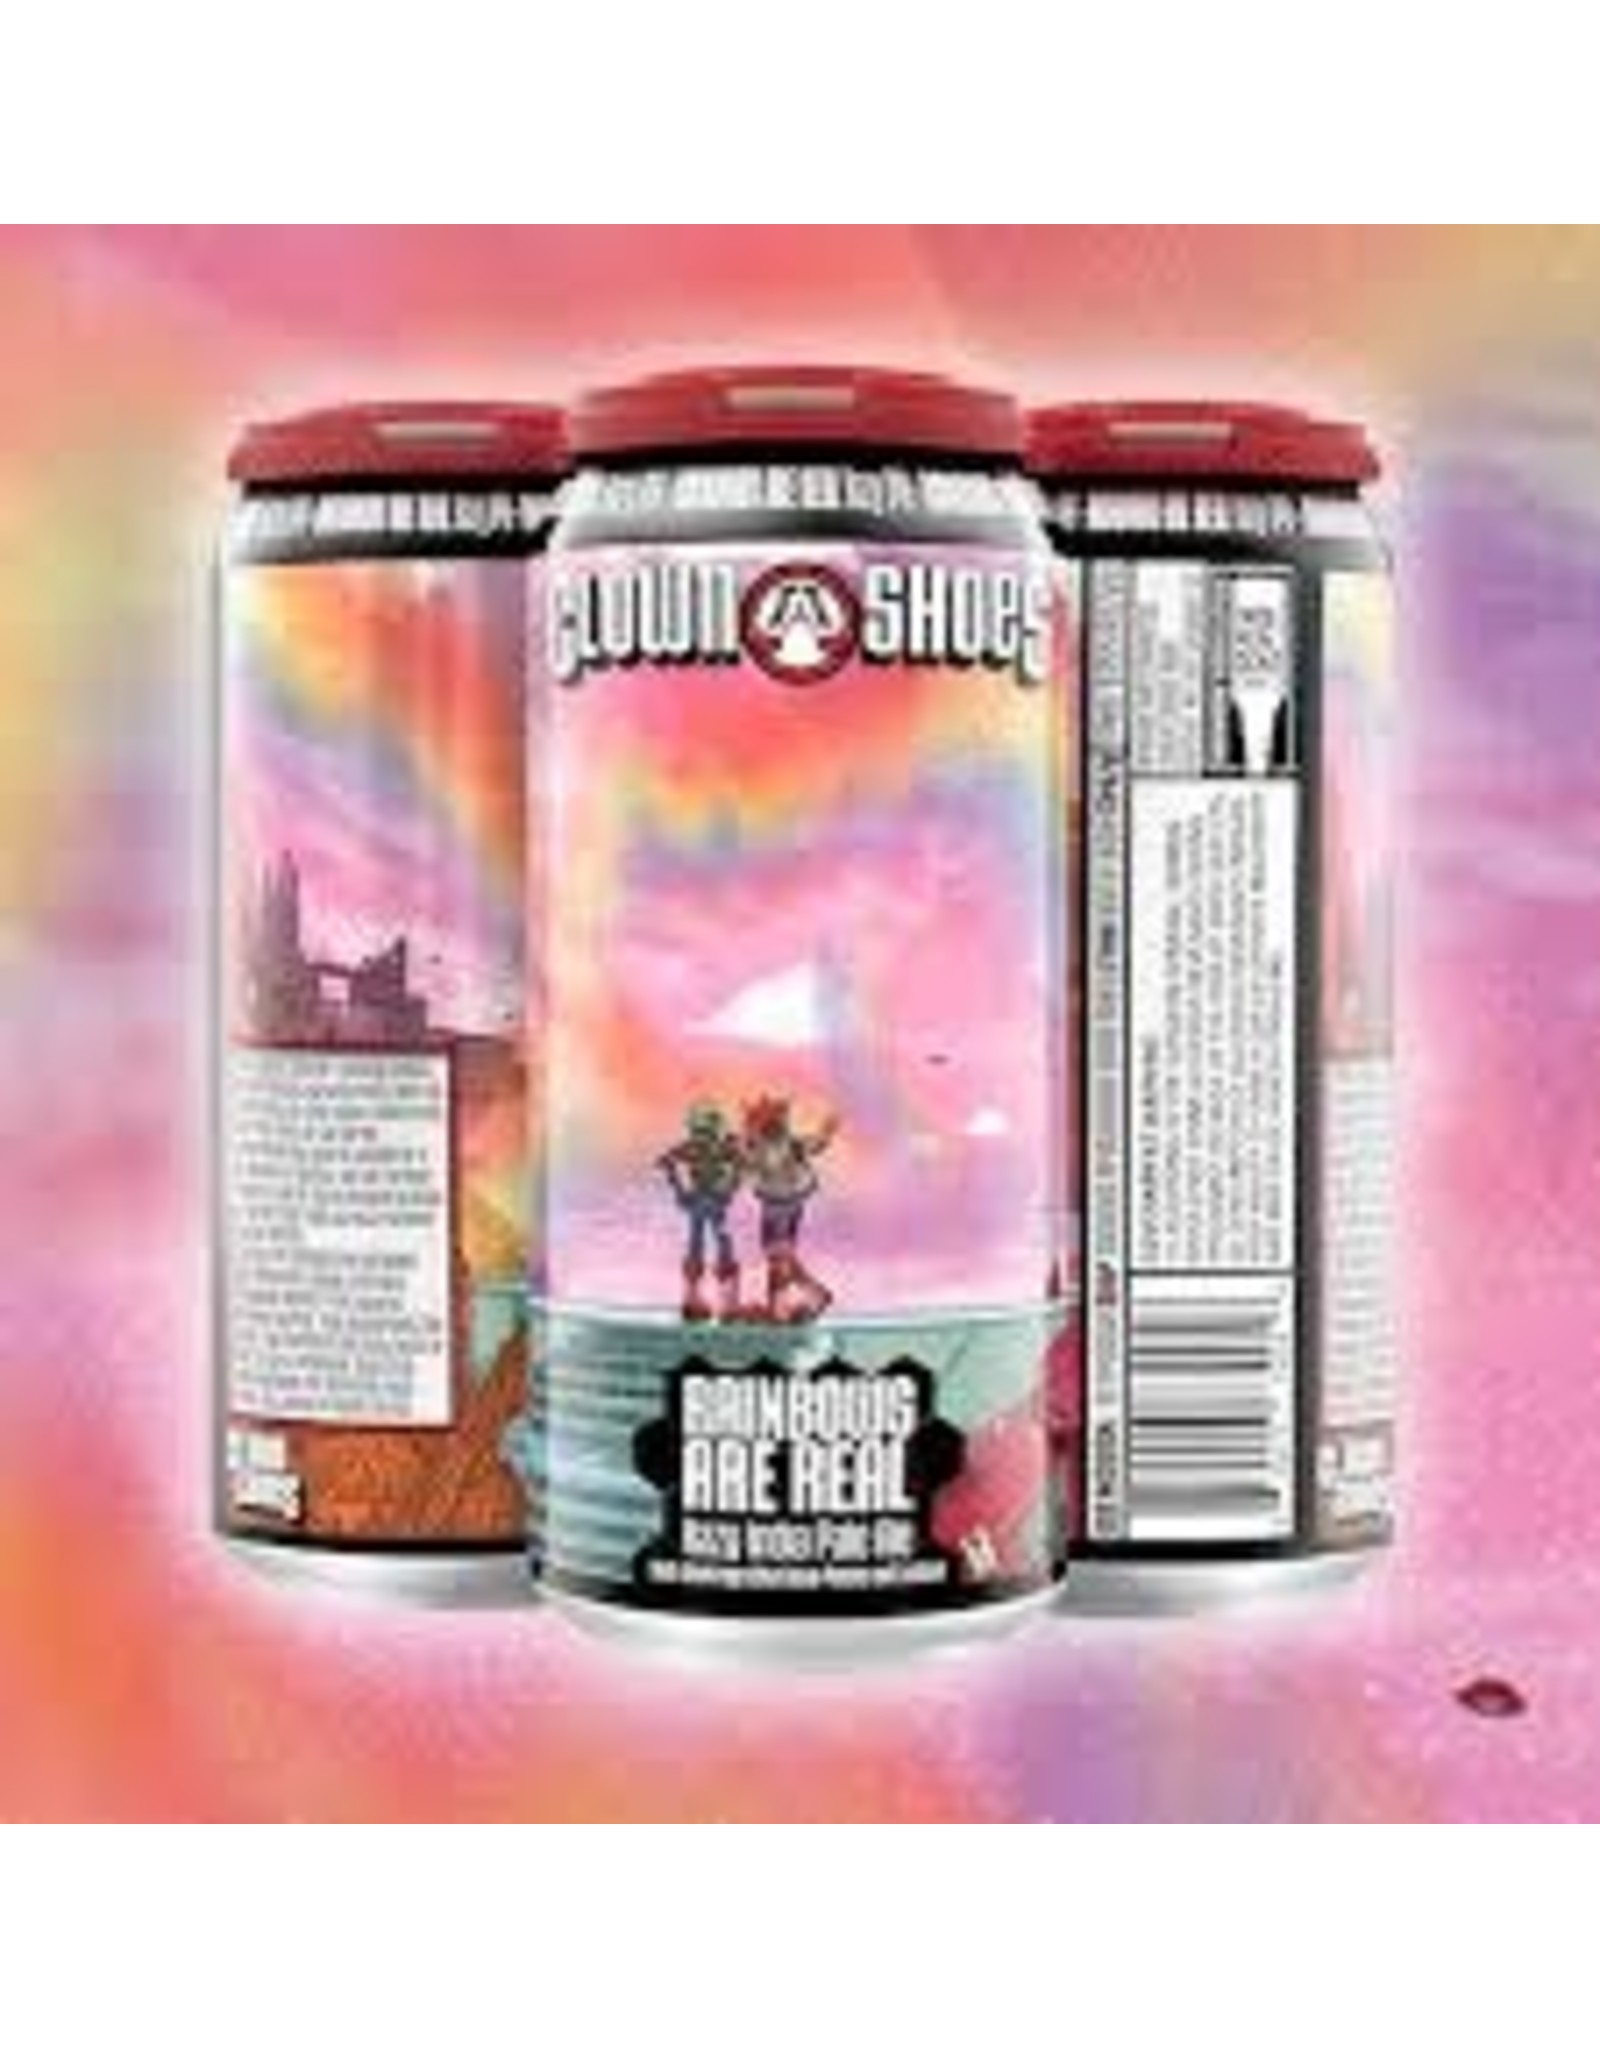 Clown Shoes Clown Shoes Rainbows Are Real 4pk can